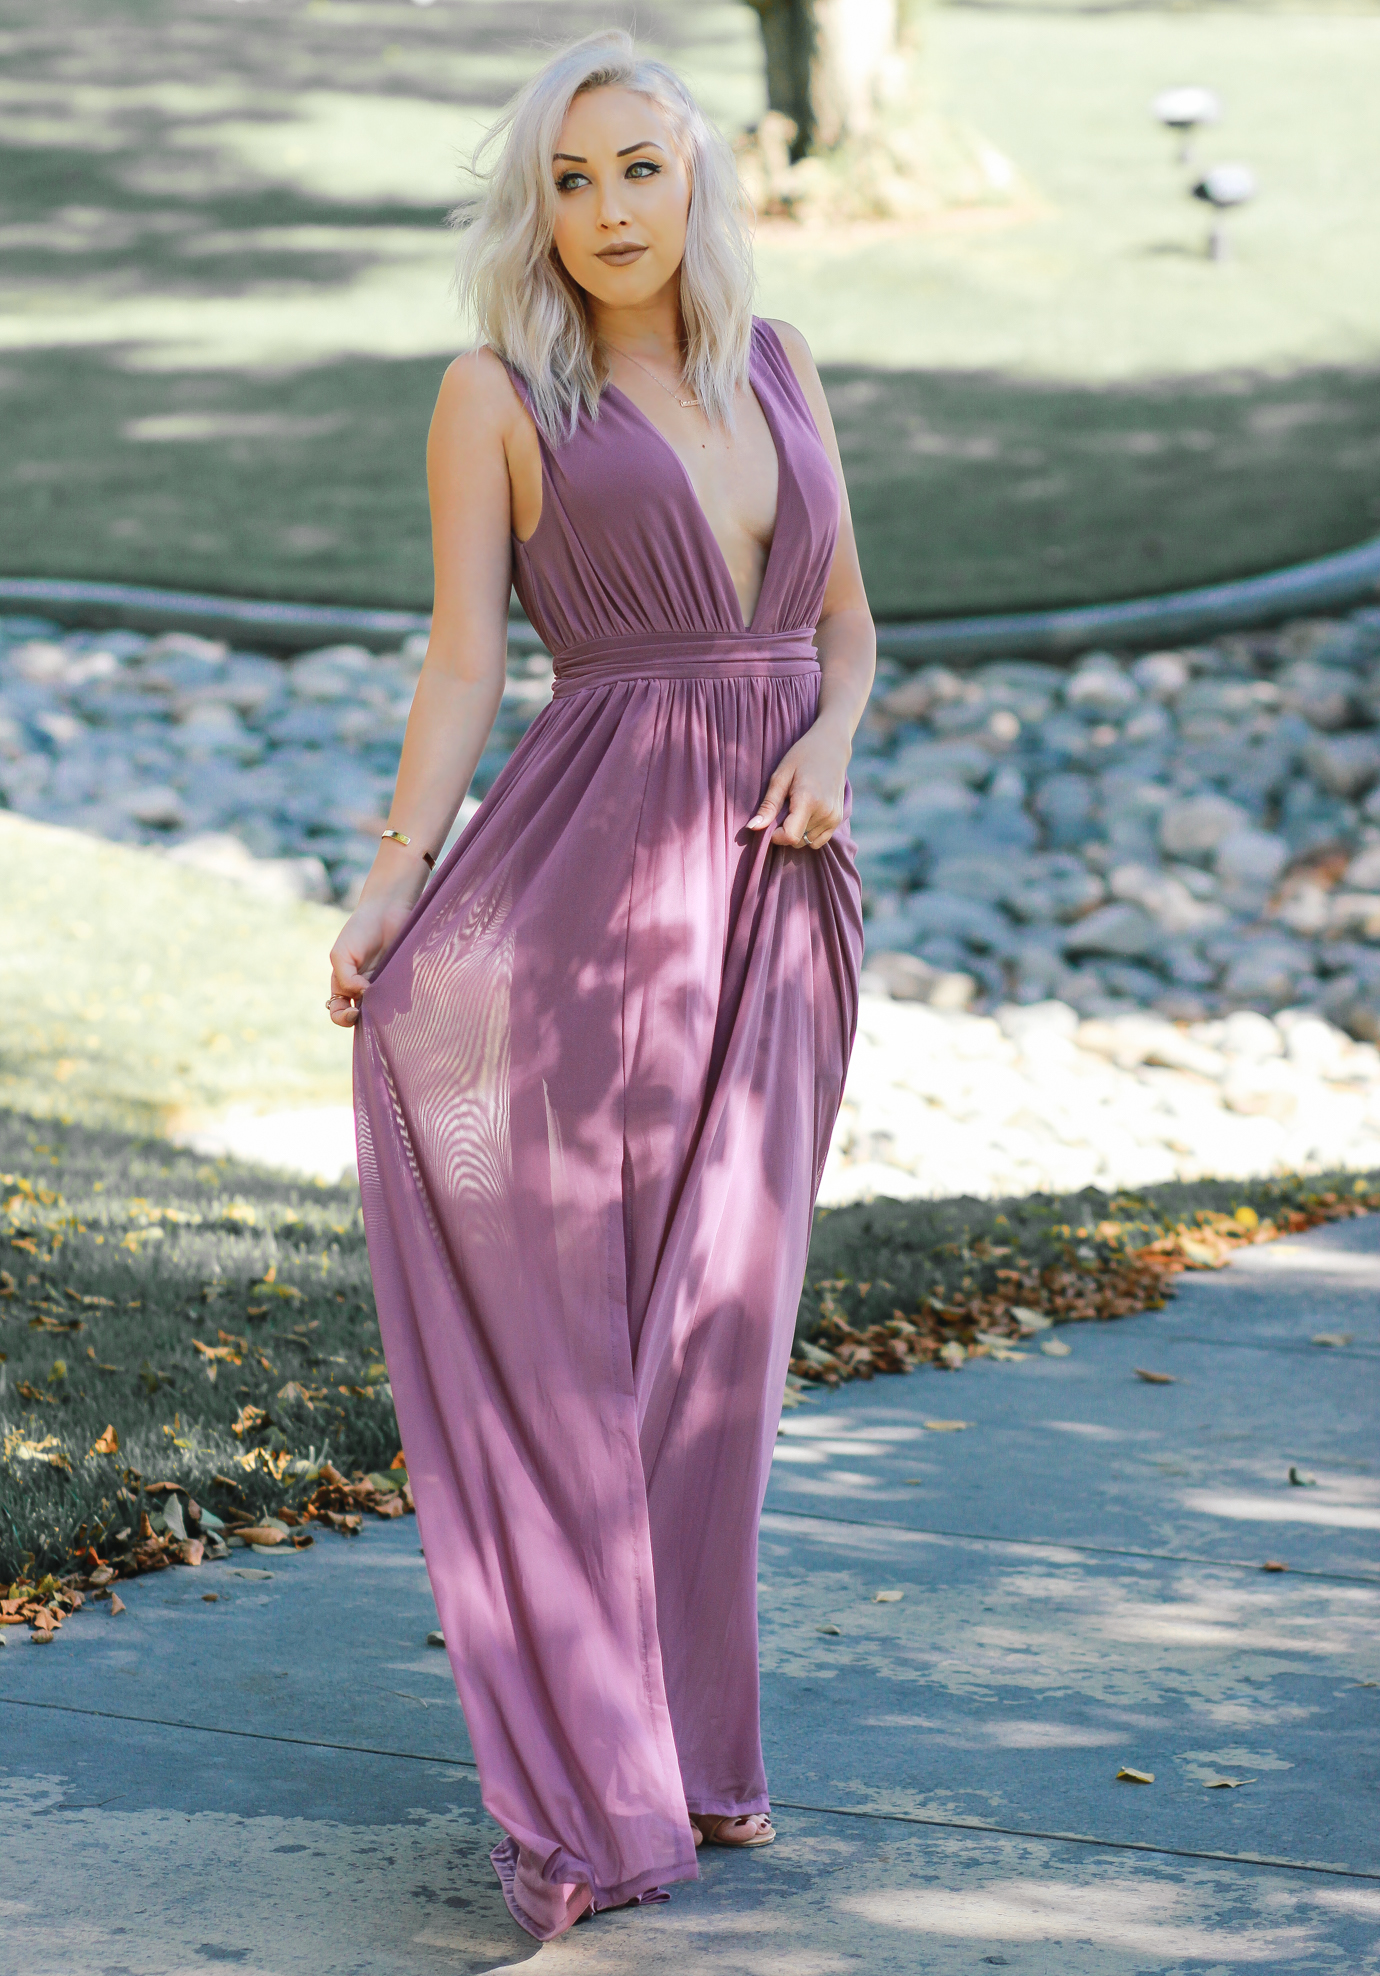 Blondie in the City | Low Cut @windsorstore Maxi Dress | Elegant Dress | Flowy Maxi Dress